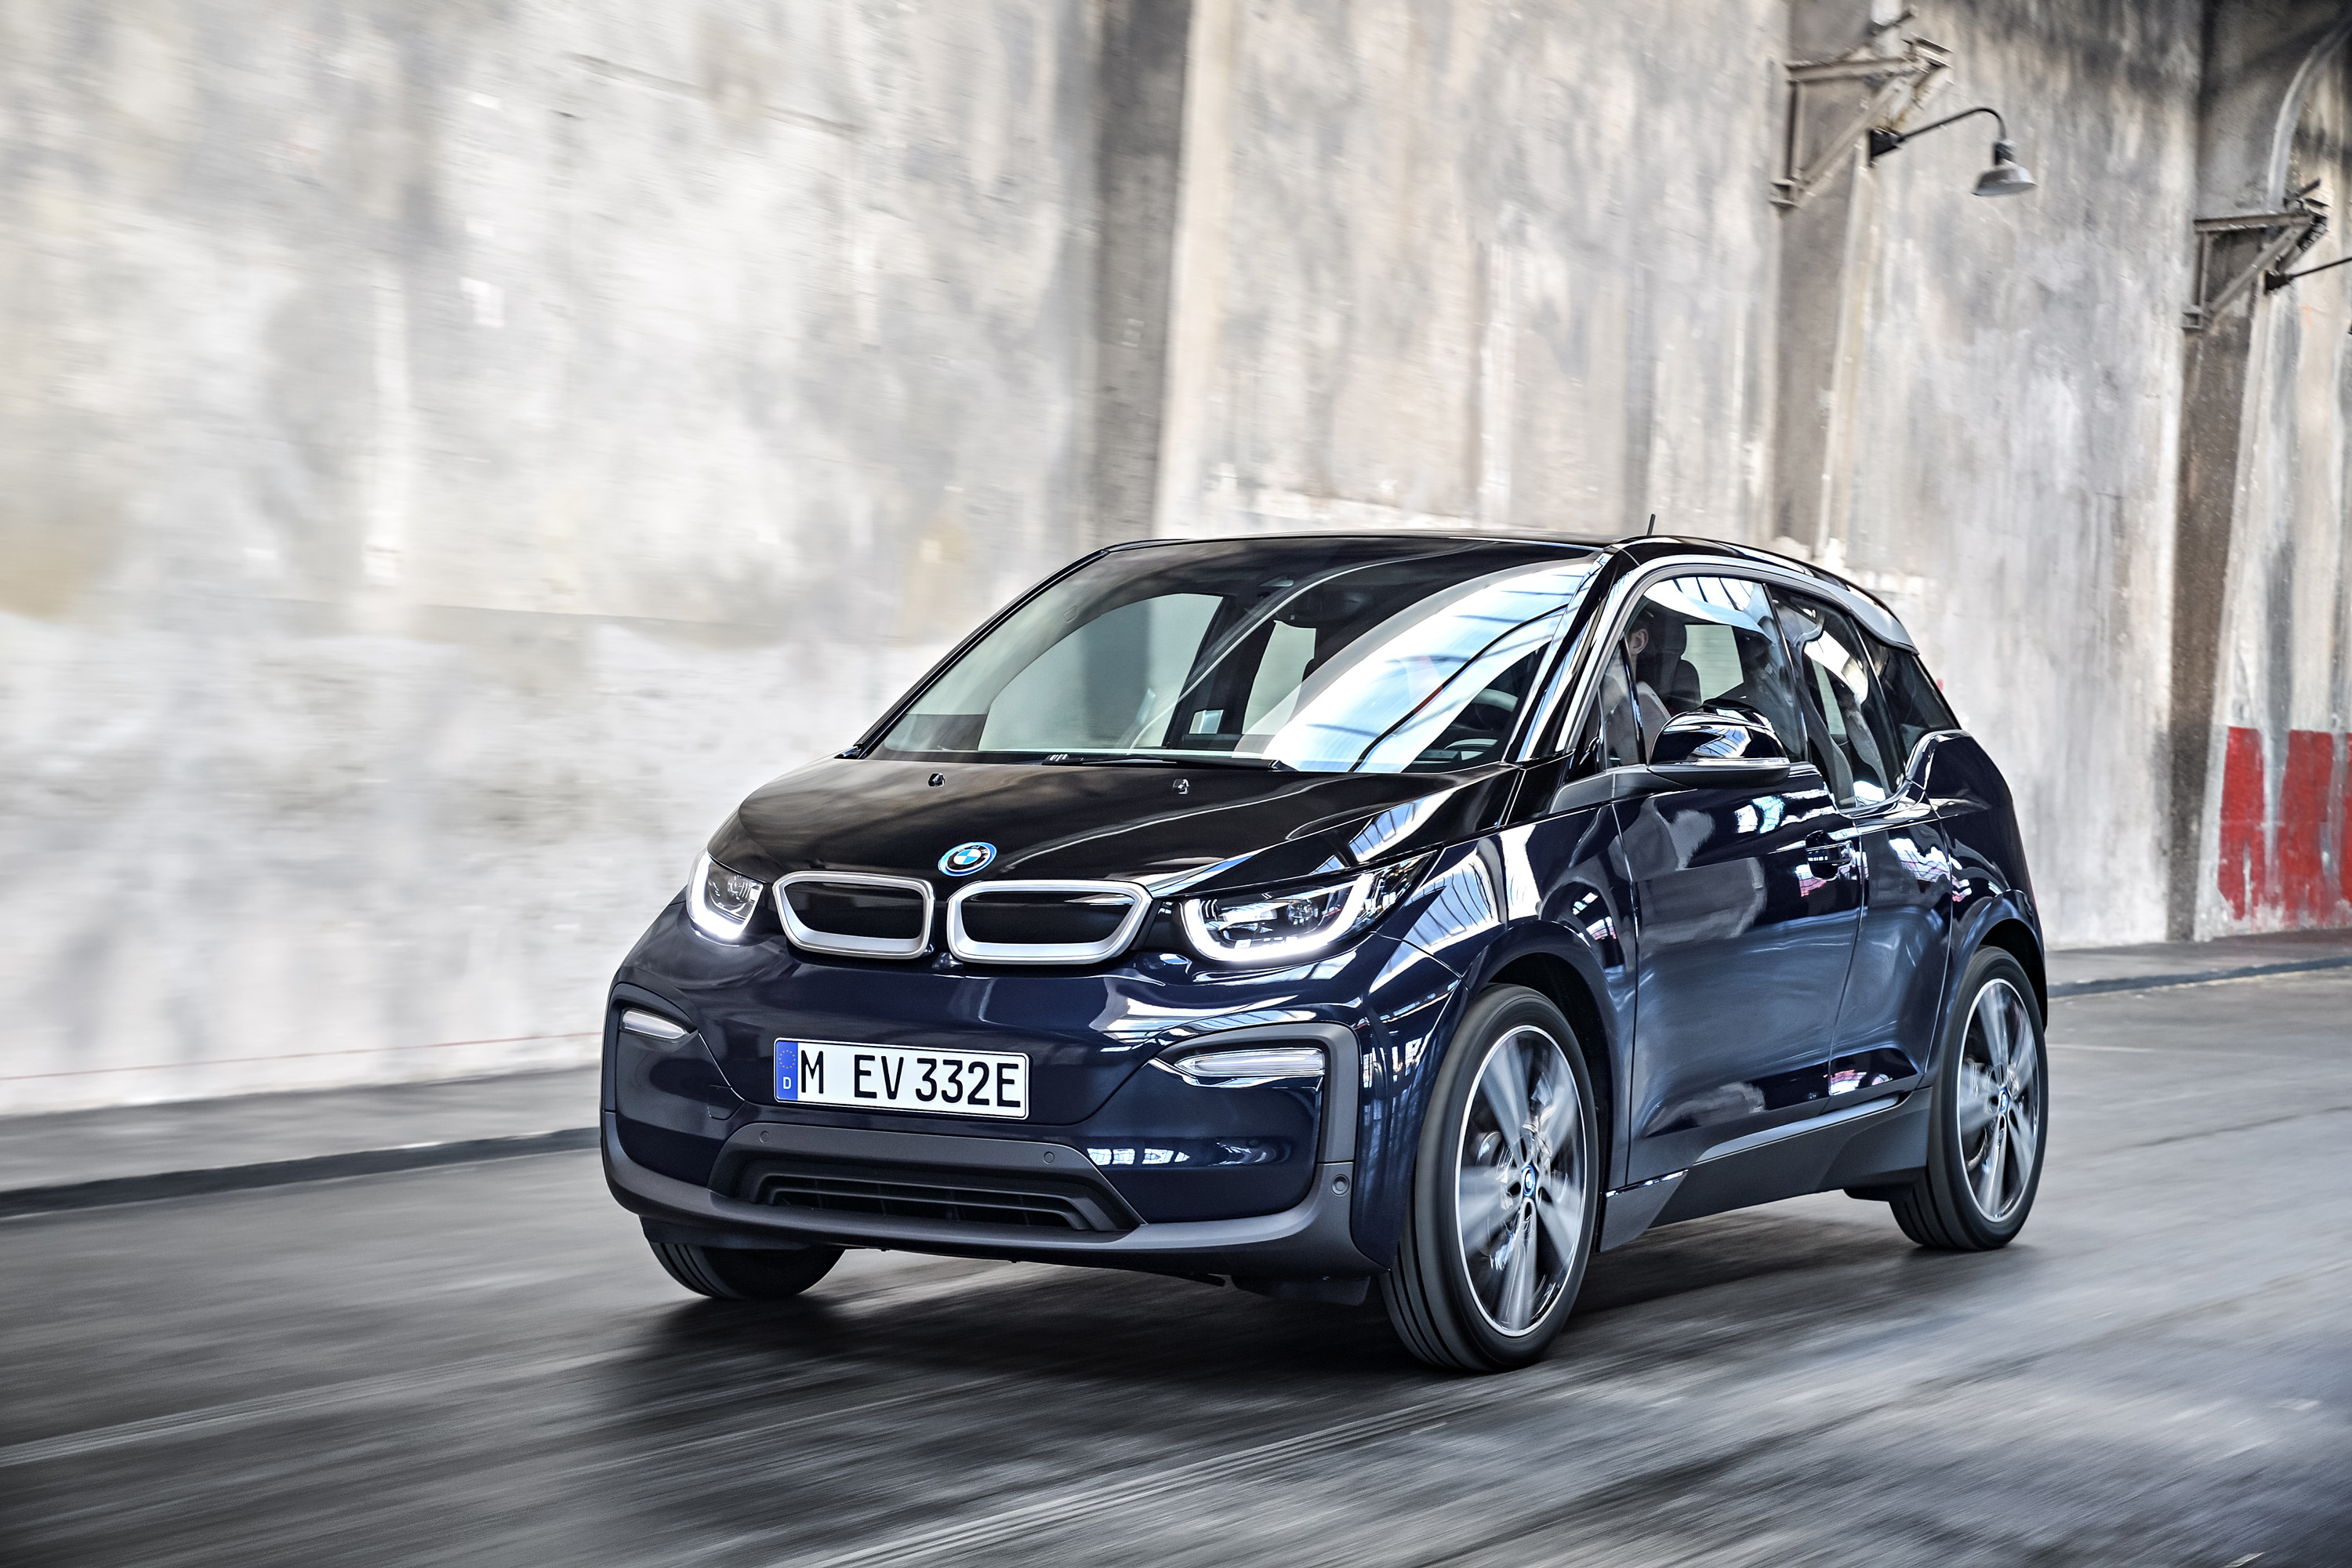 2018 Bmw I3 Top Speed Vehicle Electrical System Control Units Location